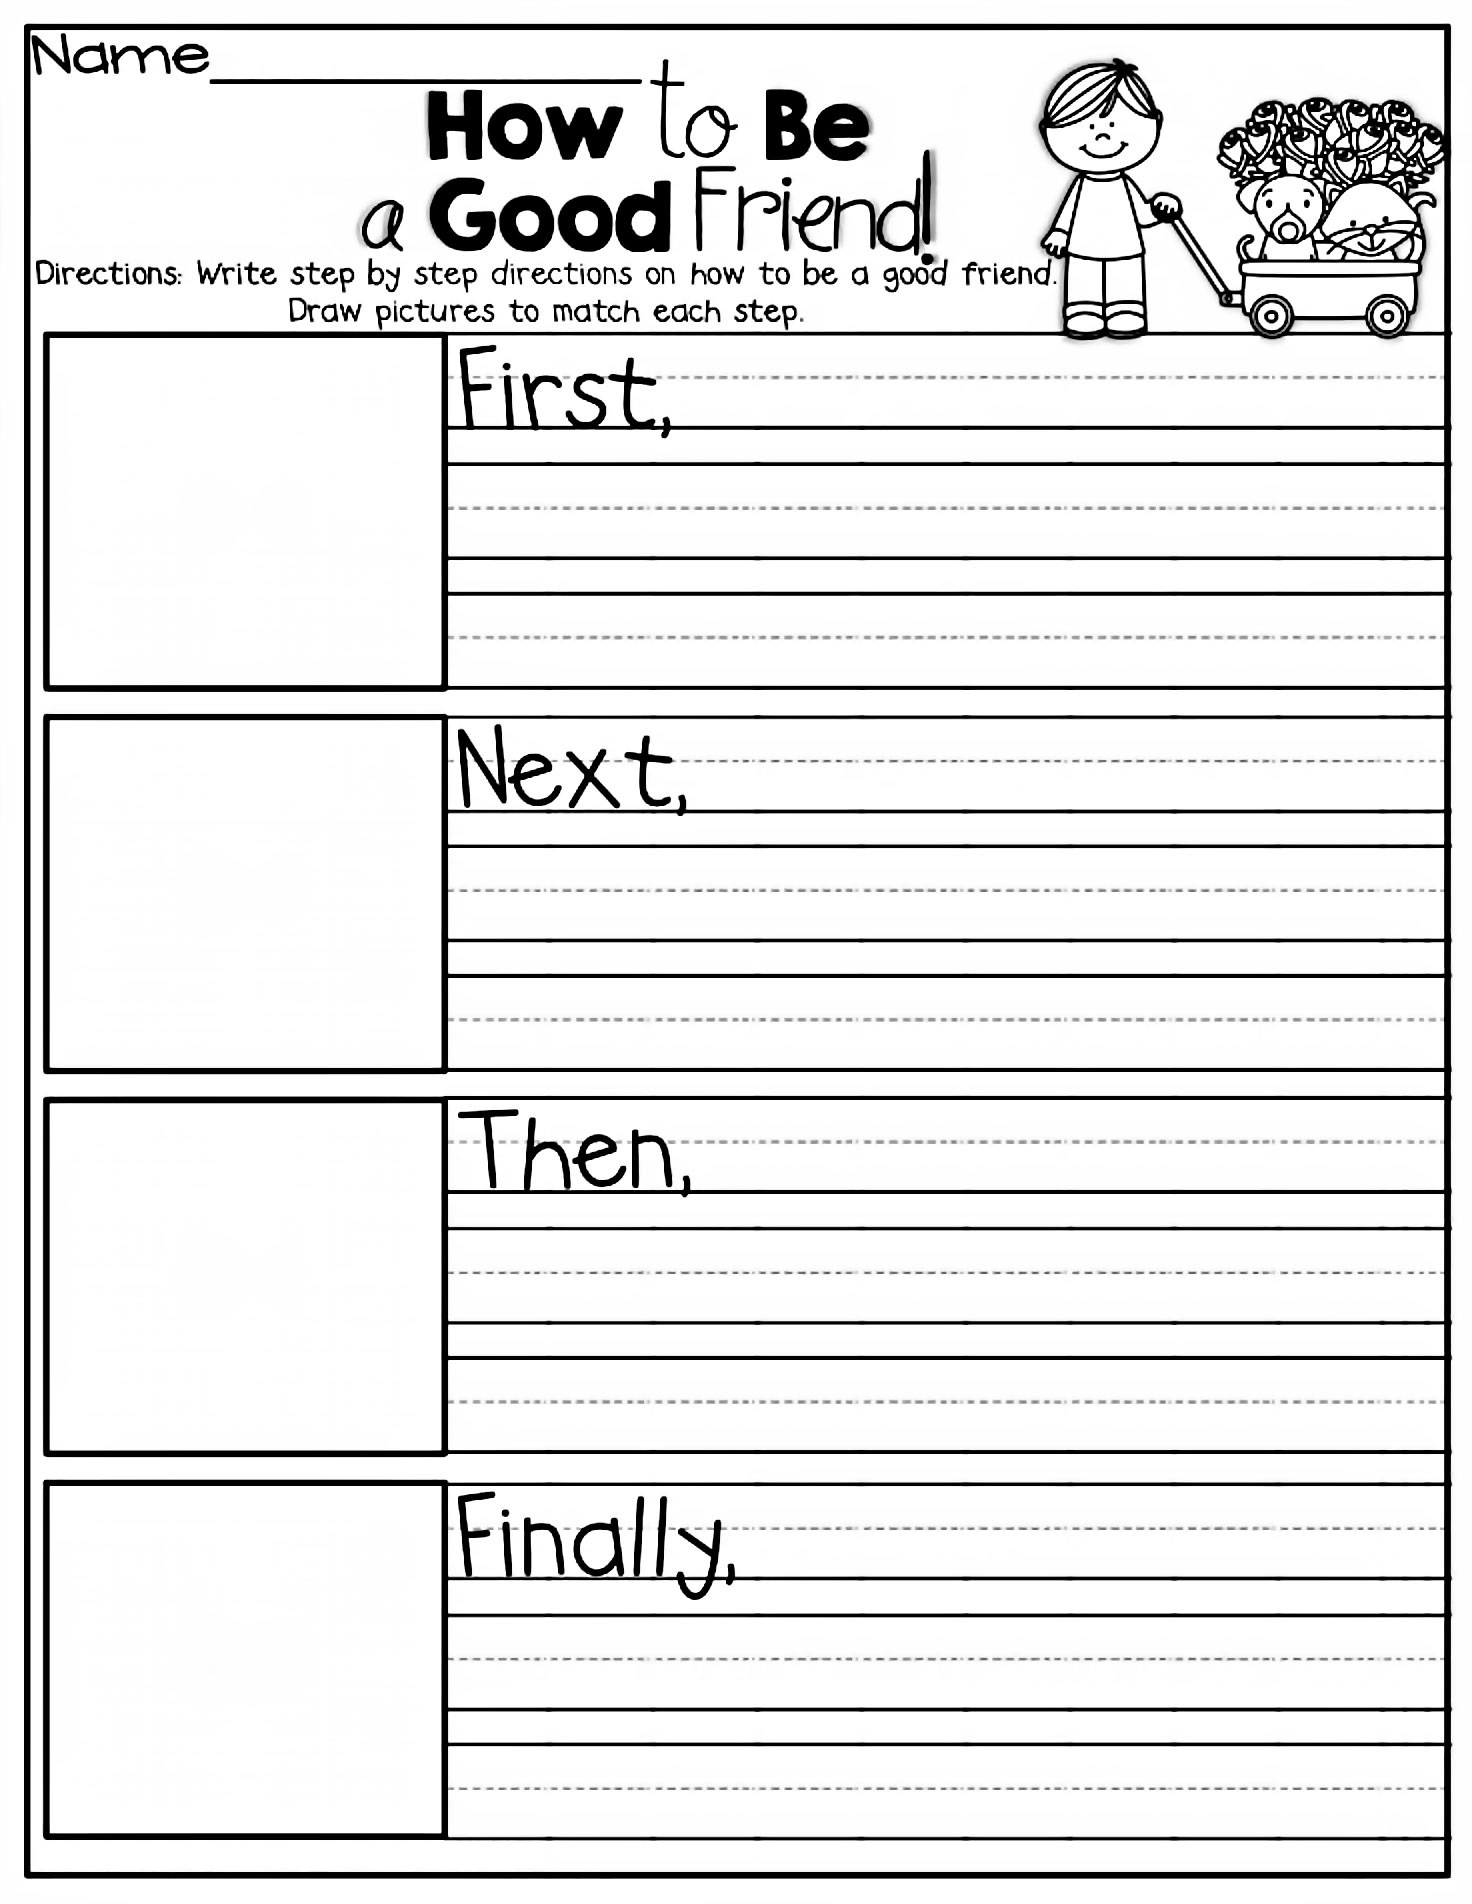 Lined Worksheet Maker